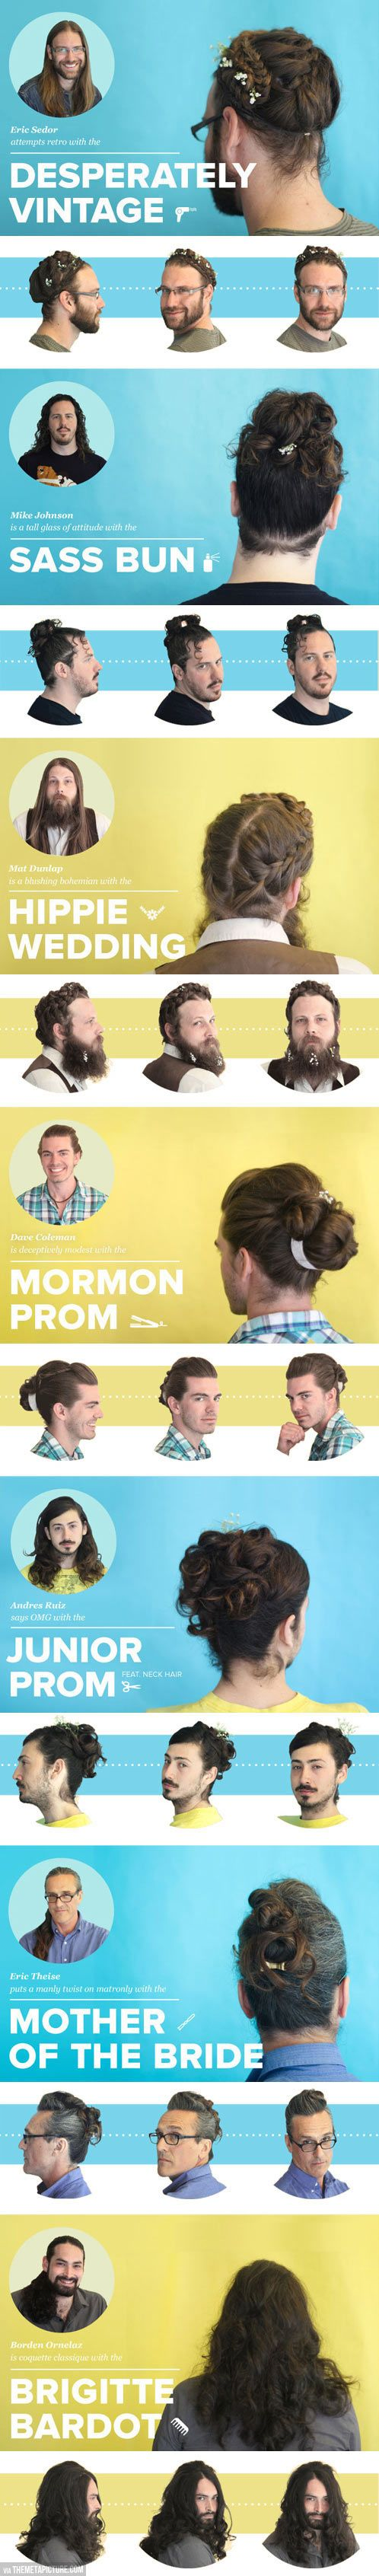 Guys with fancy lady hairu the mormons haha and hair